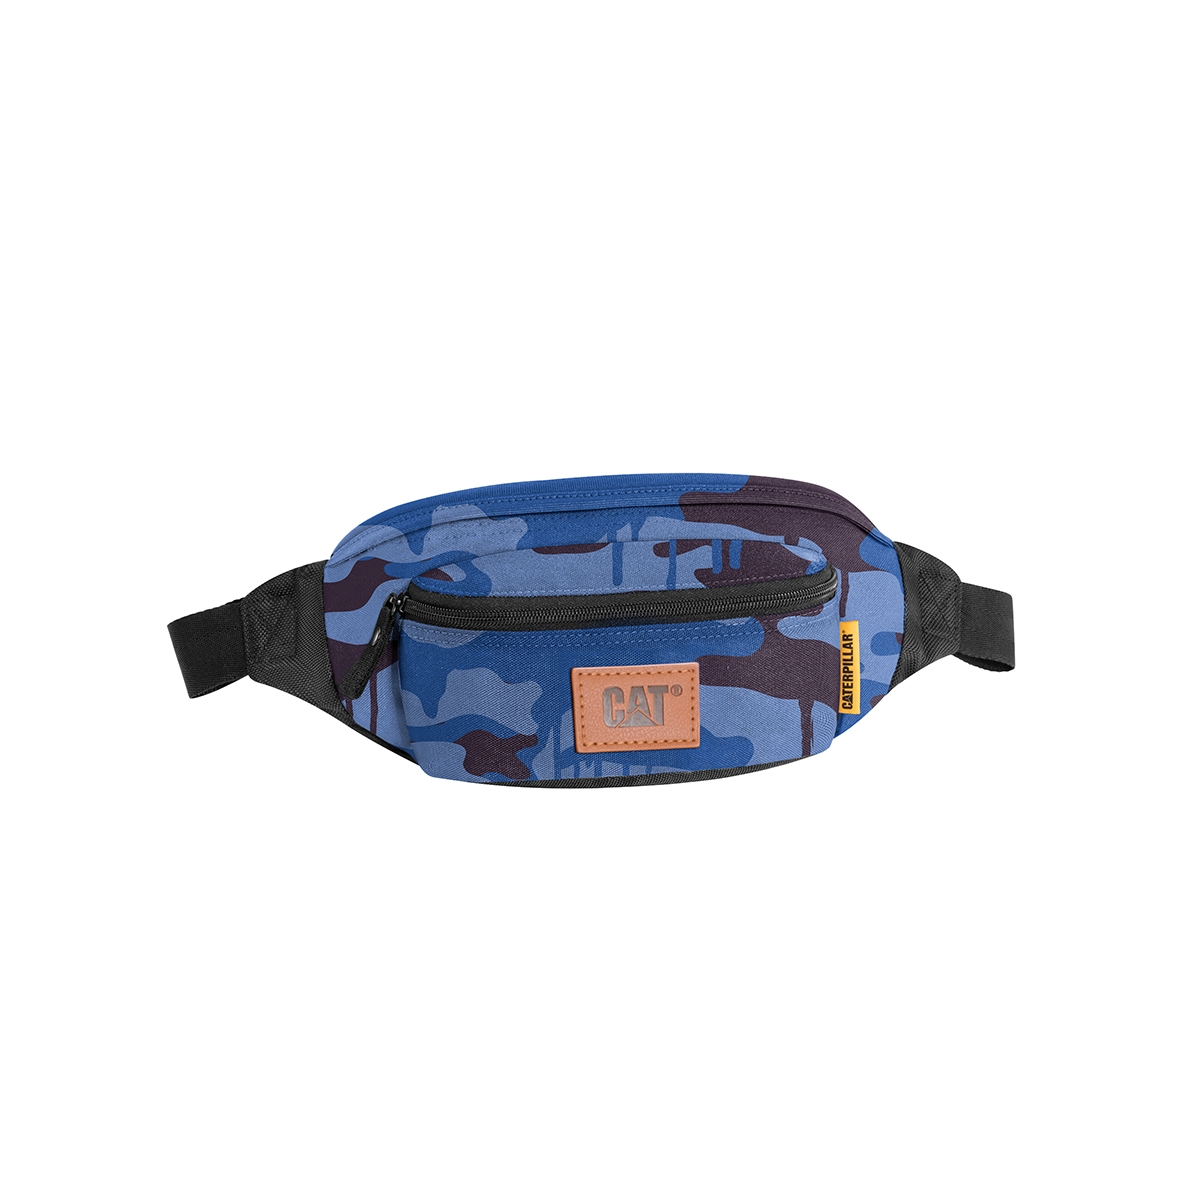 Jual Caterpillar Raymond Tas Selempang Pria - Dripping Camo Blue Caterpillar  Bags   Luggage 31a2e34a47